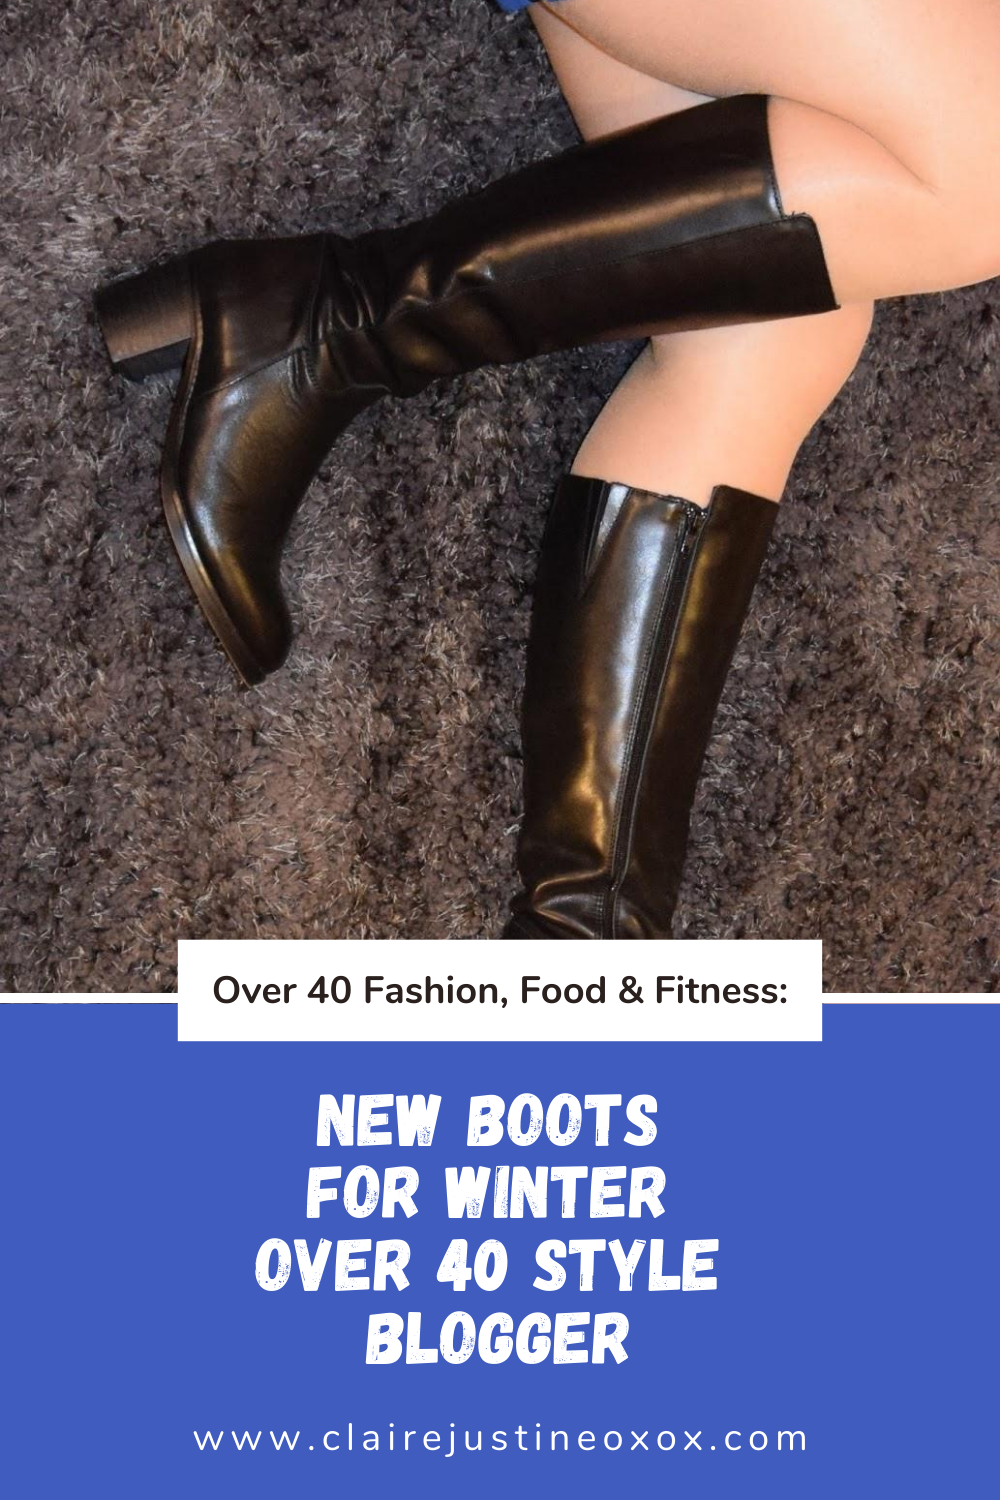 New Boots For Winter Over 40 Style Blogger